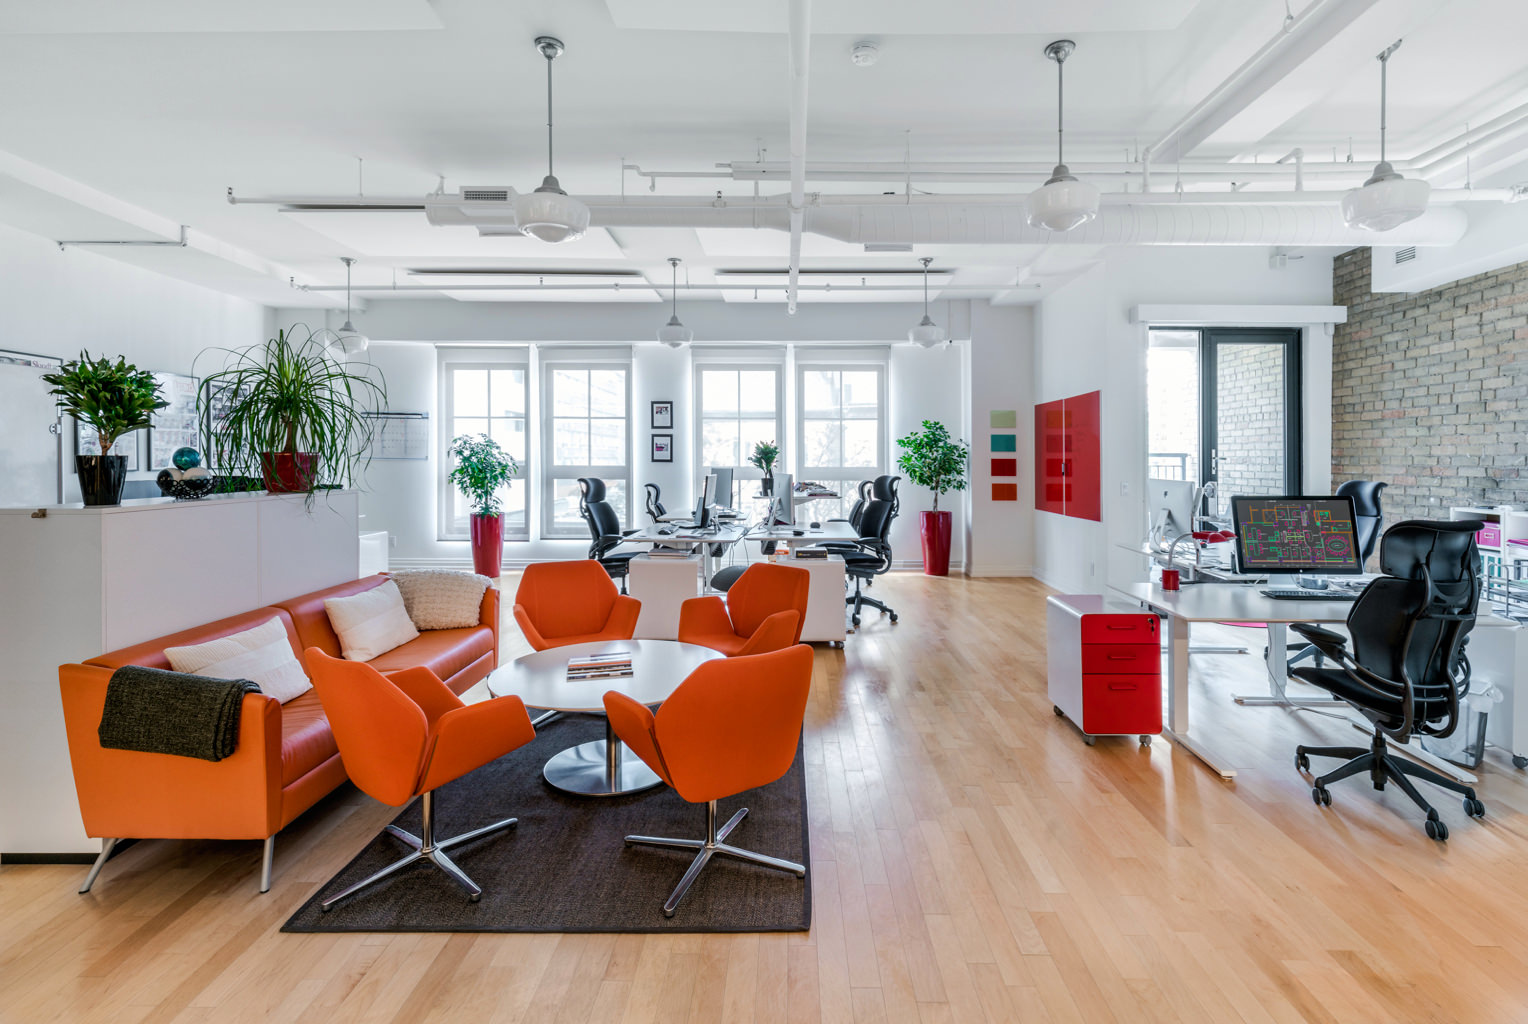 MetteSpace offices